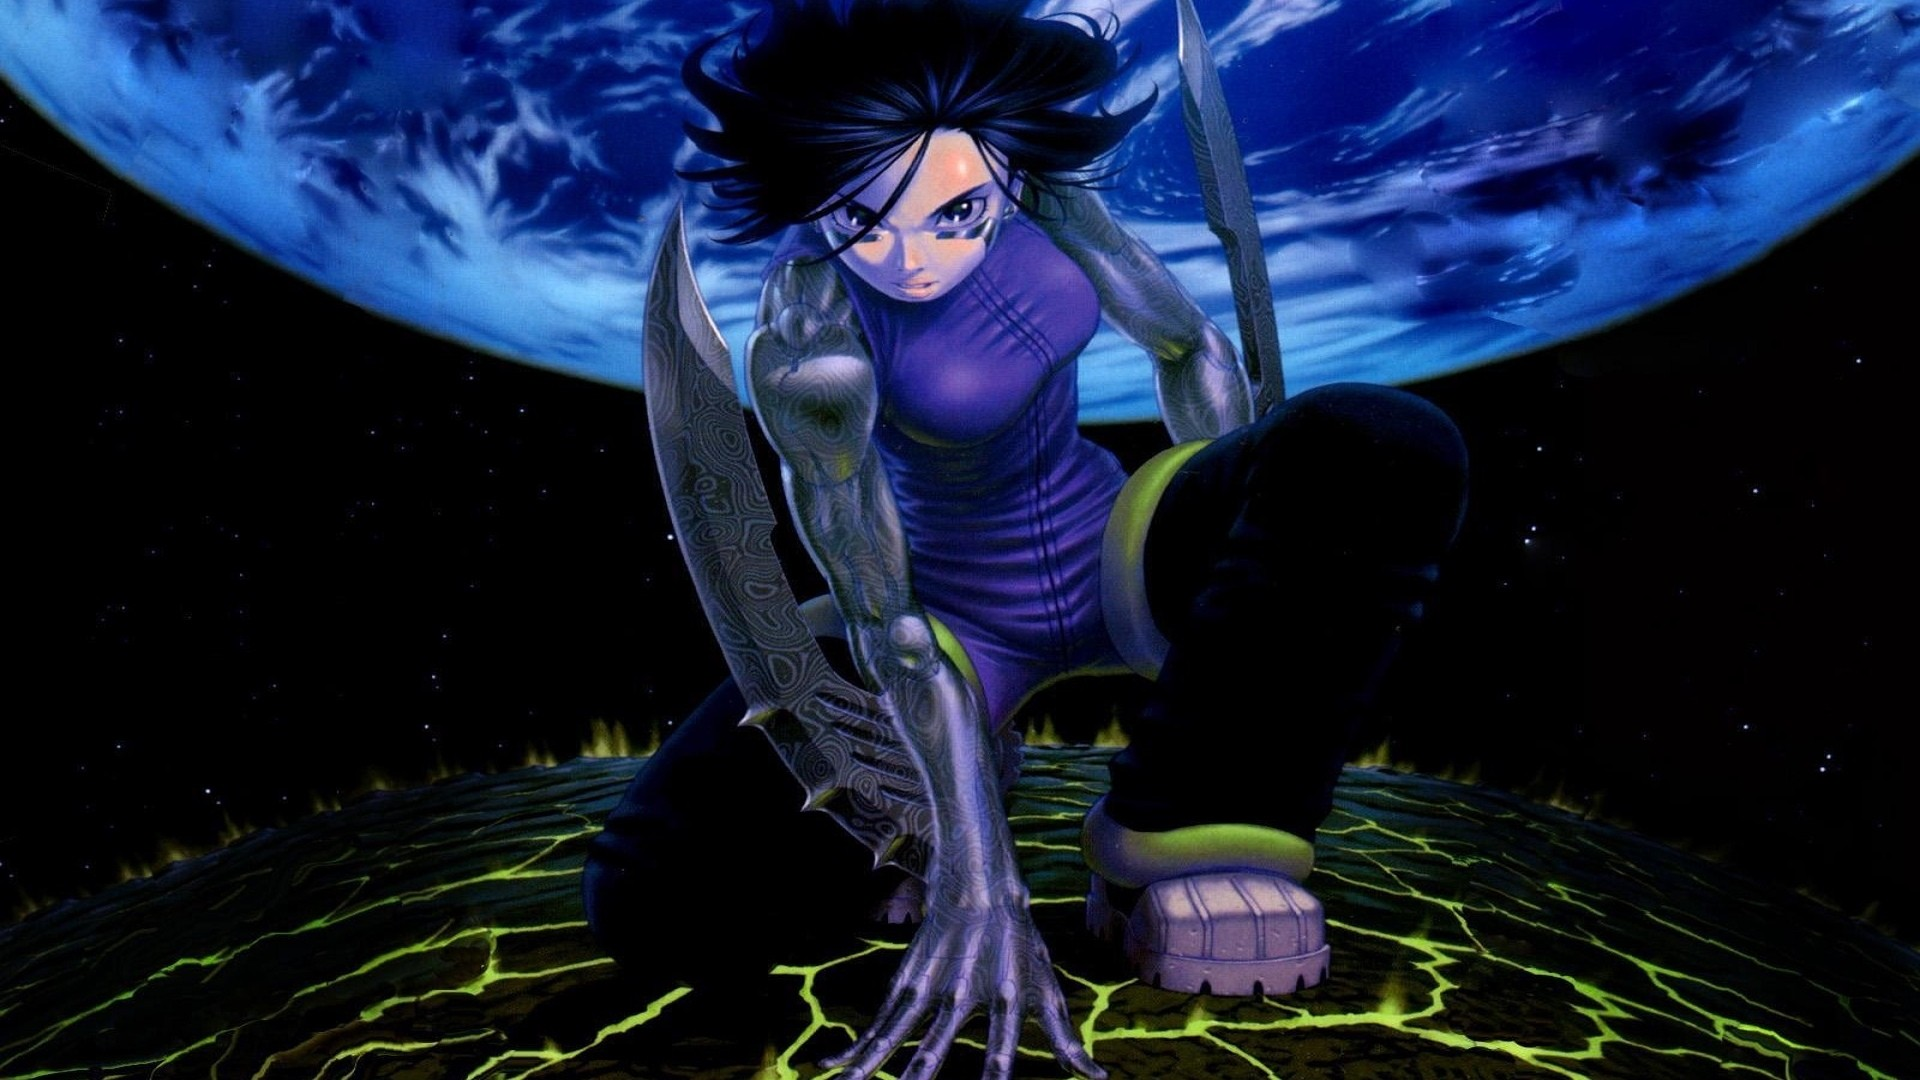 Alita Battle Angel wallpaper photo hd